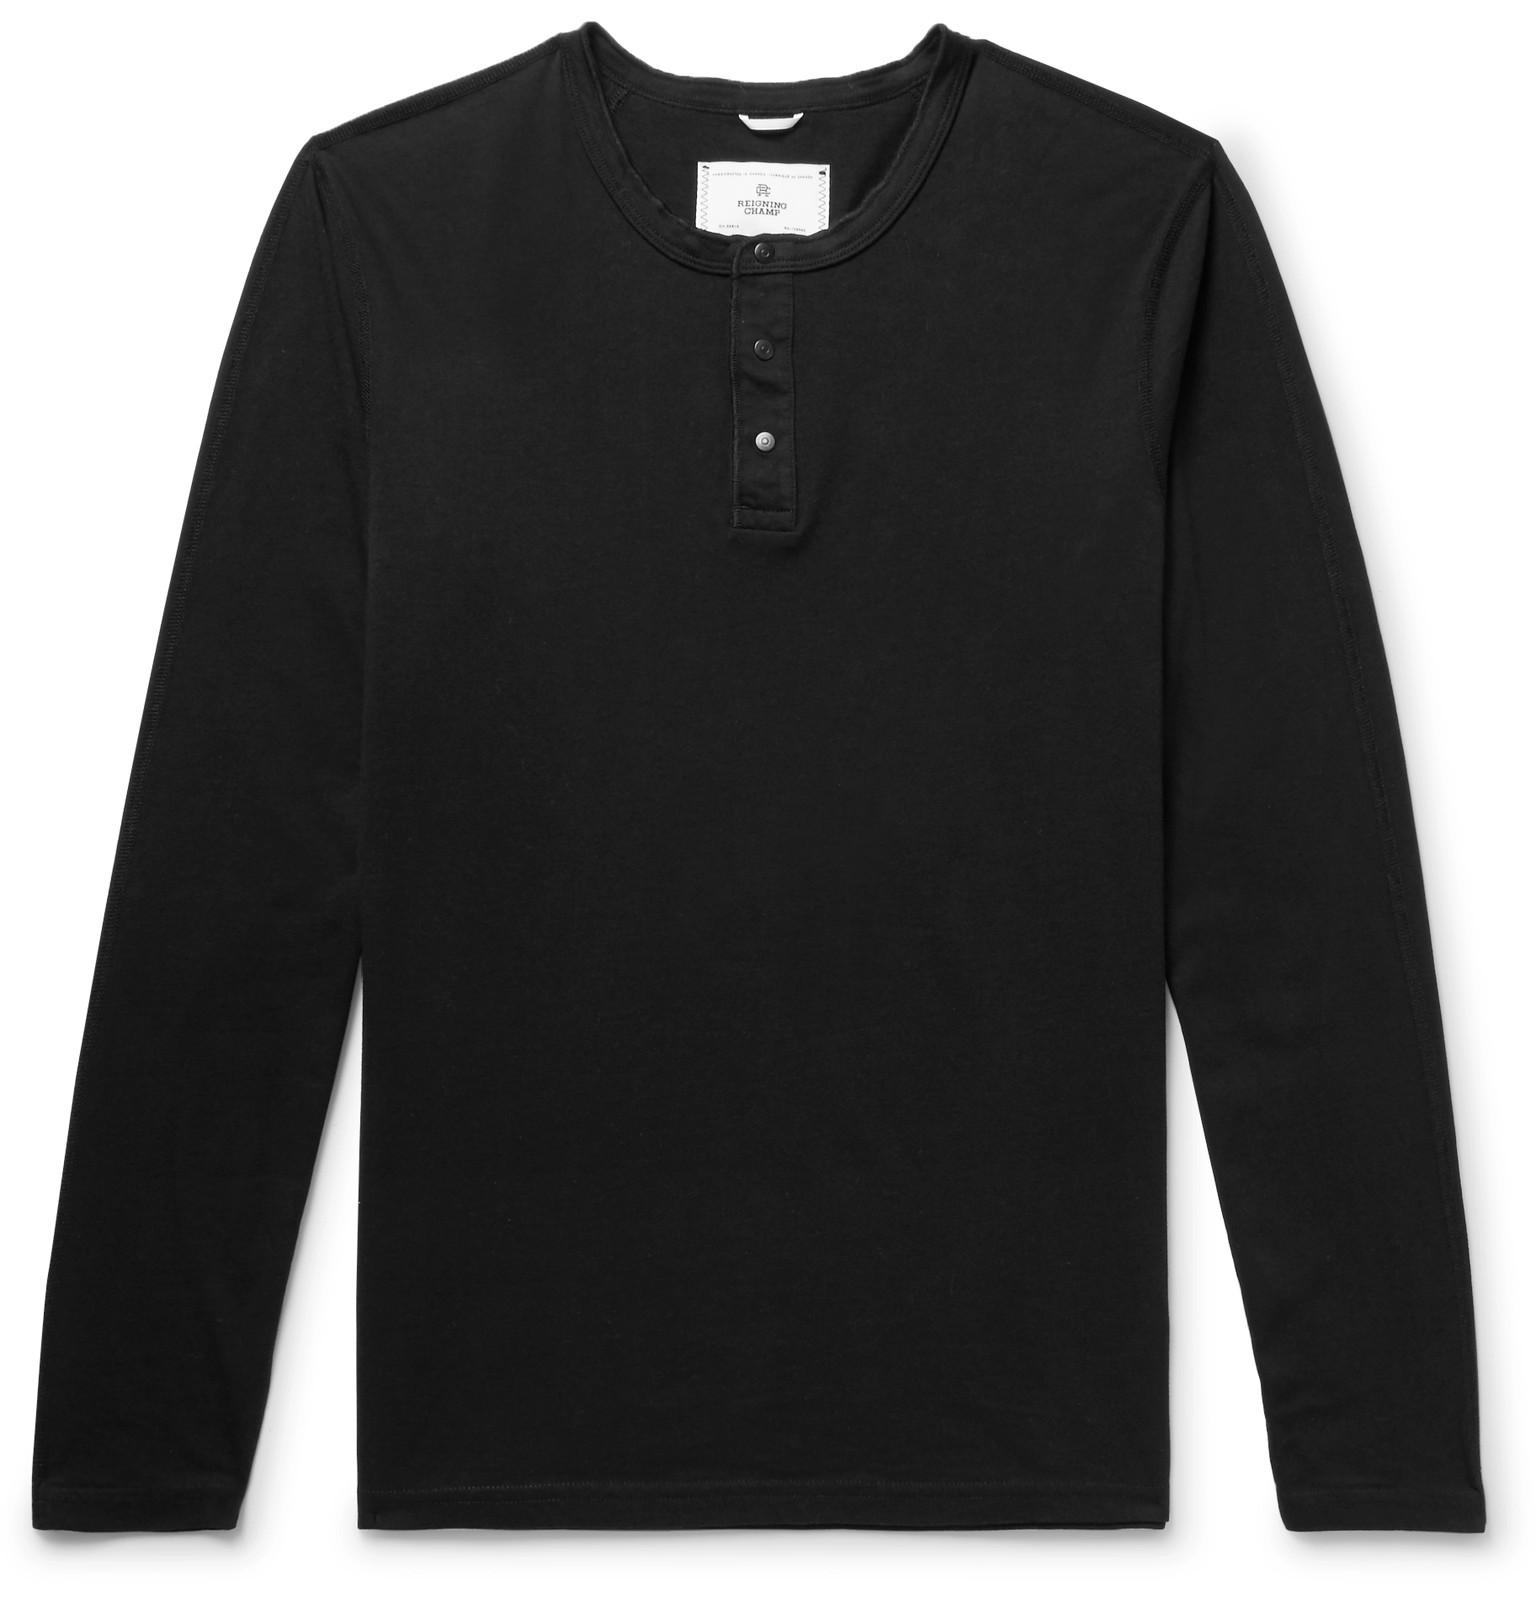 Reigning Champ Ring-spun Cotton-jersey Henley T-shirt - Black 2pm4E